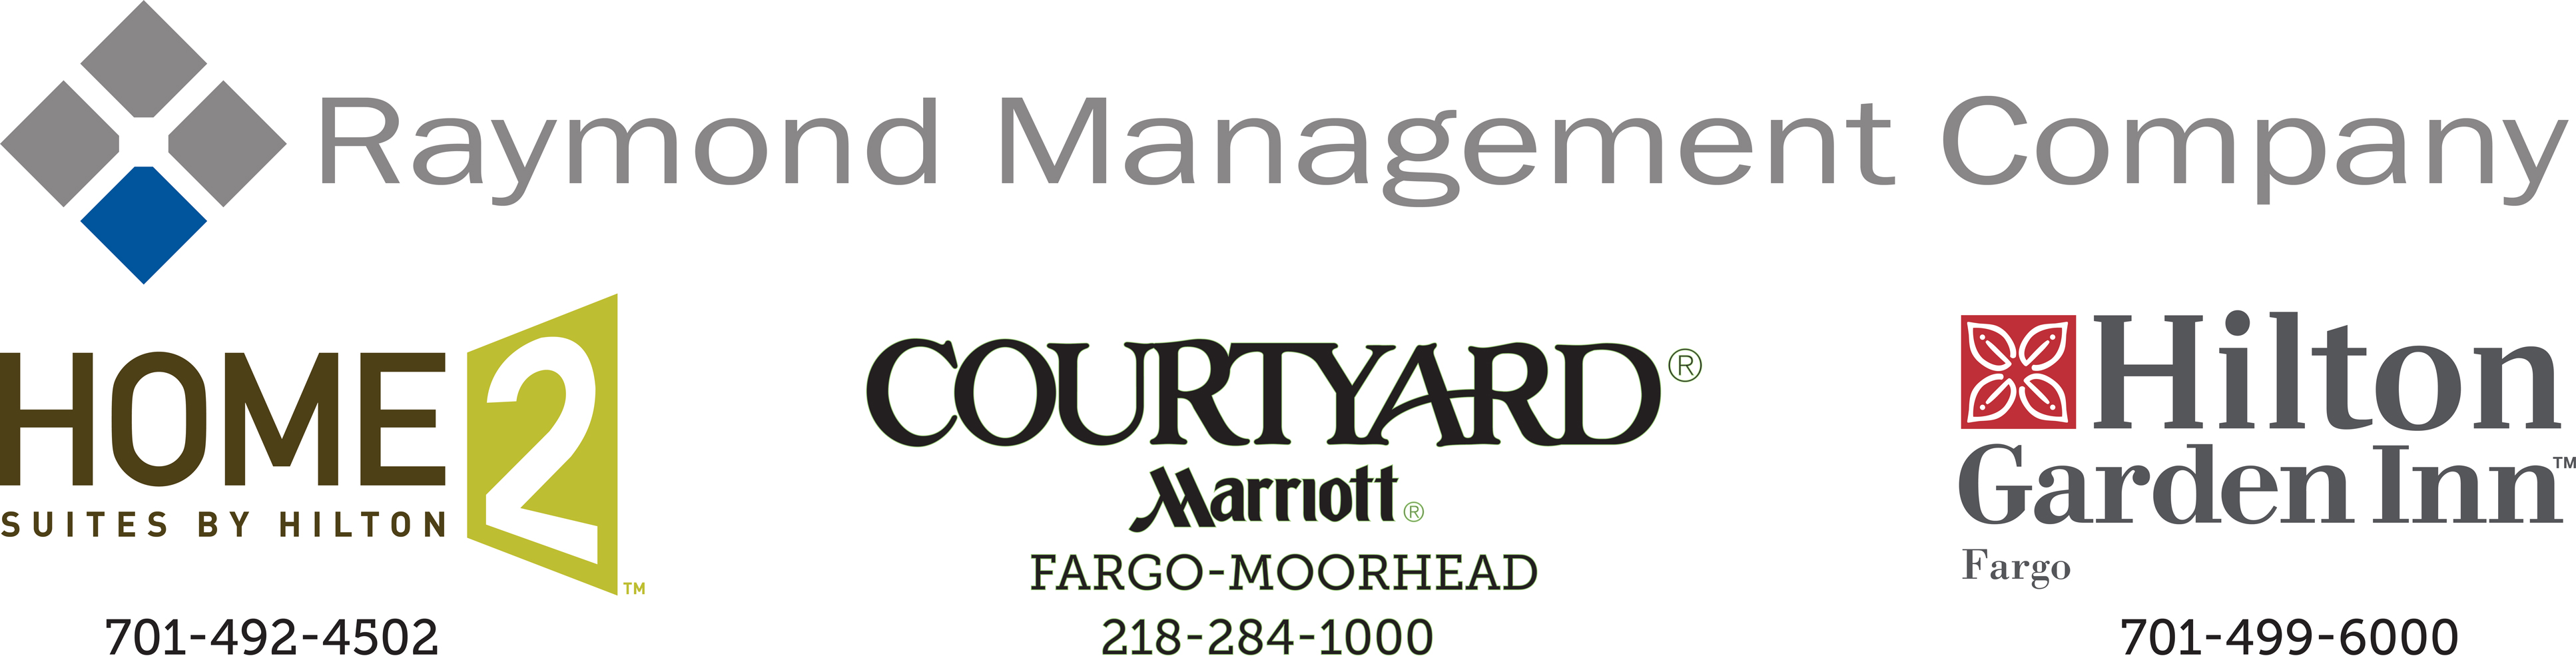 Raymond Management Company